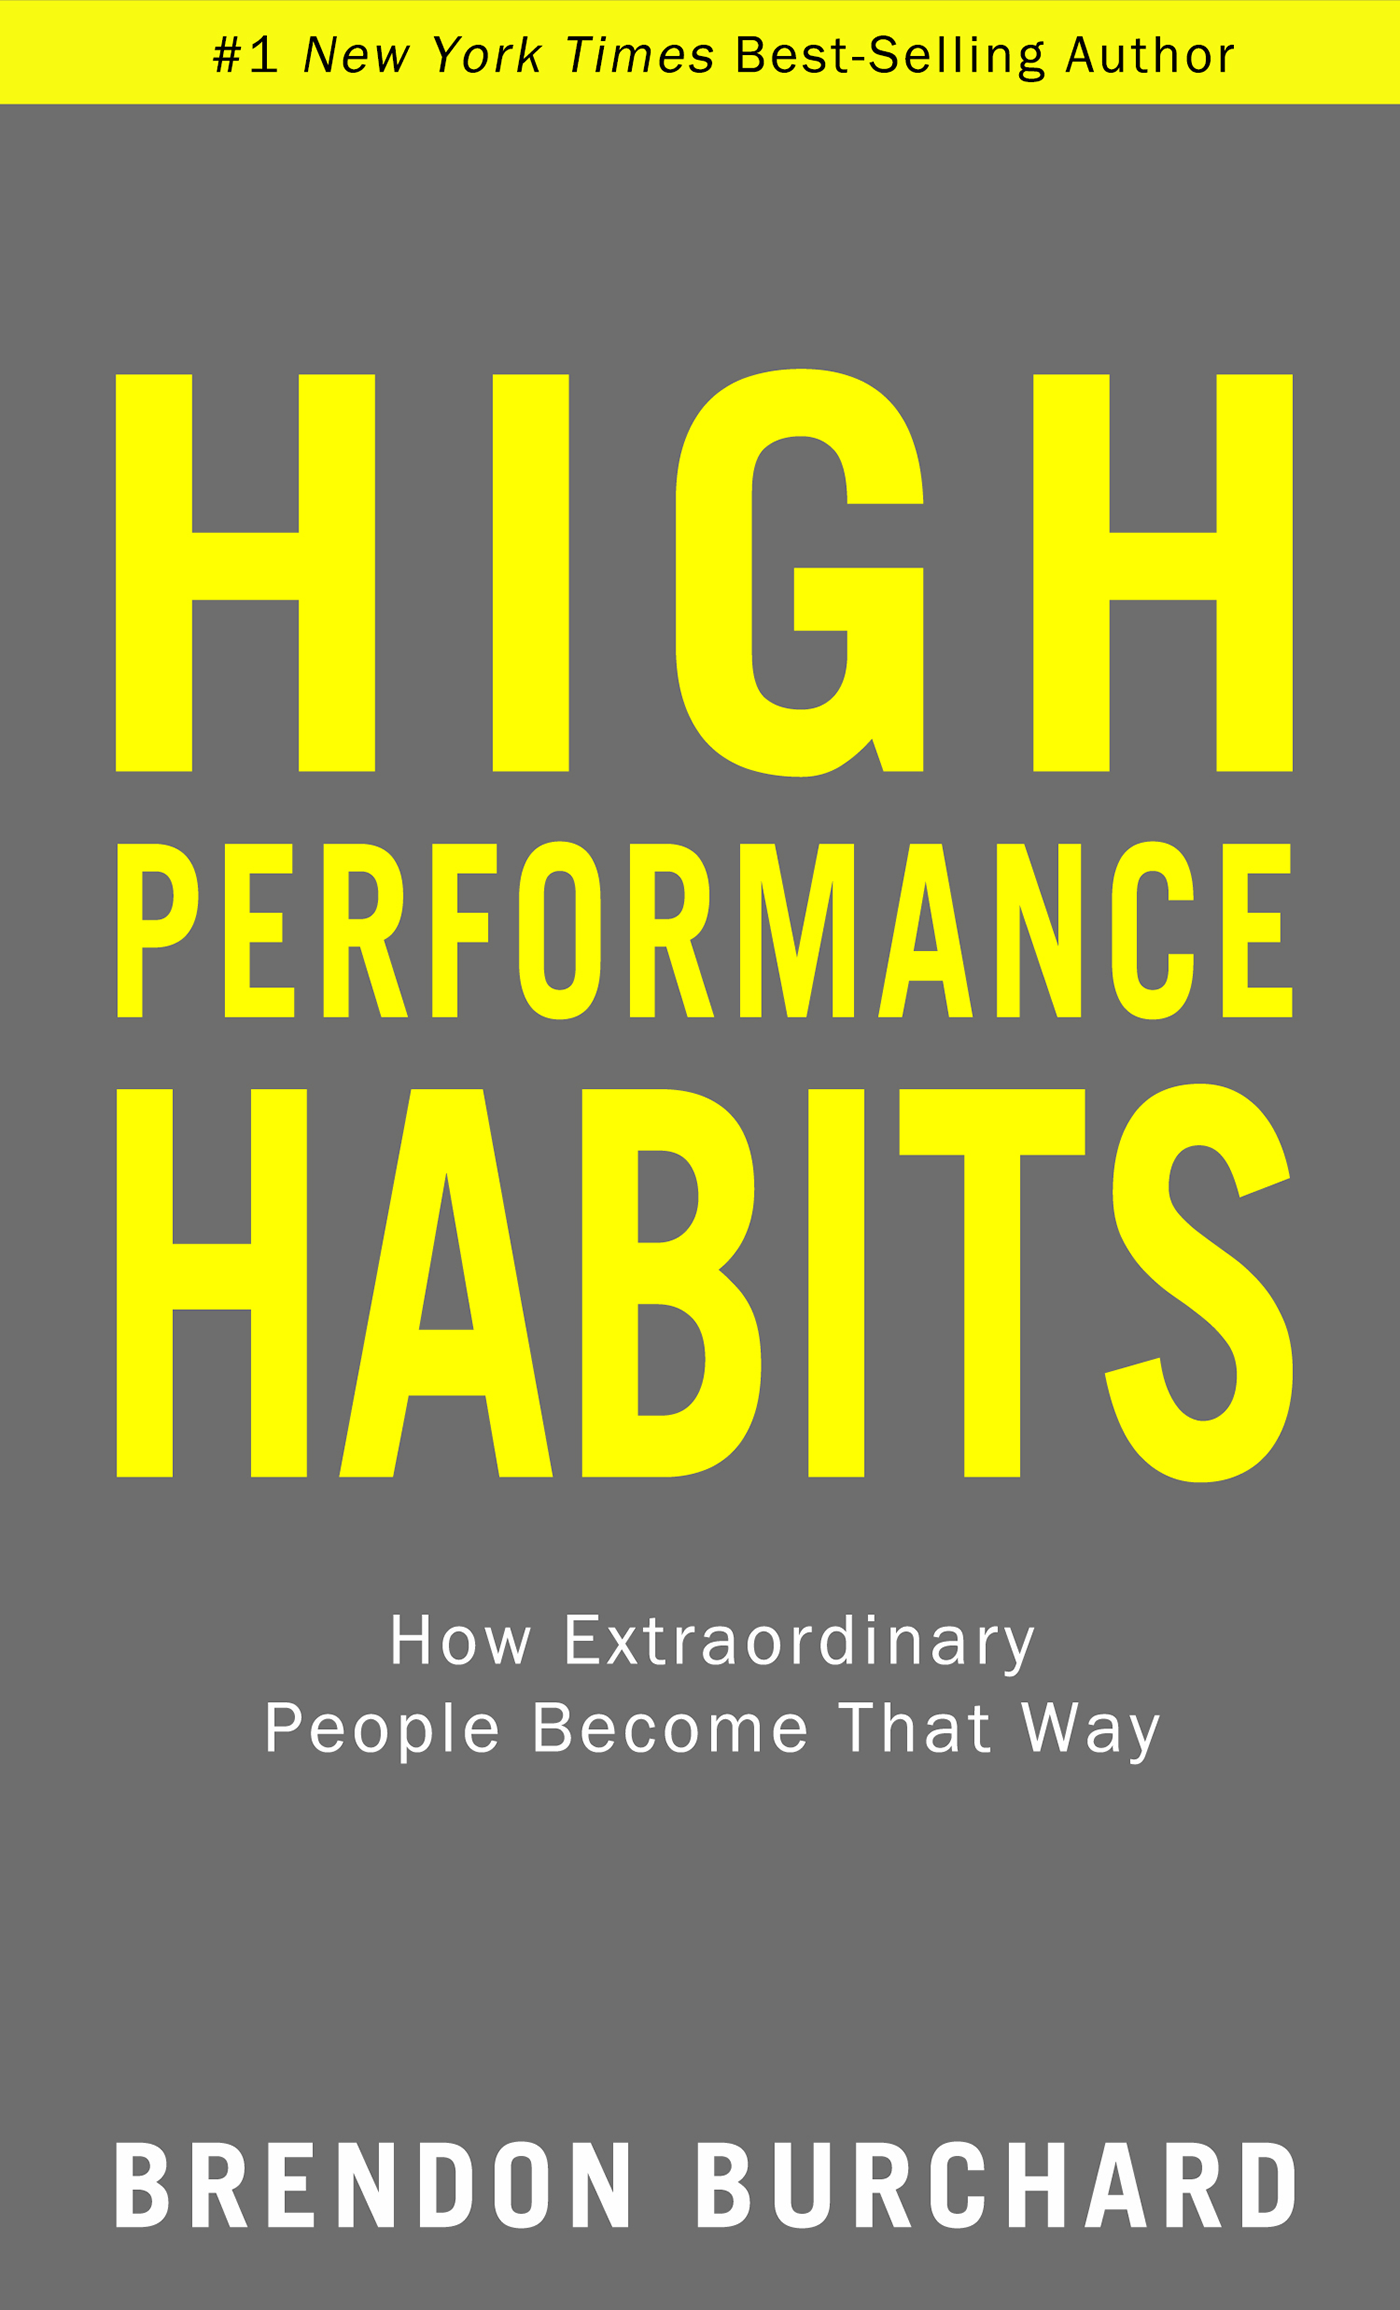 High Performance Habits by Brendon Burchard